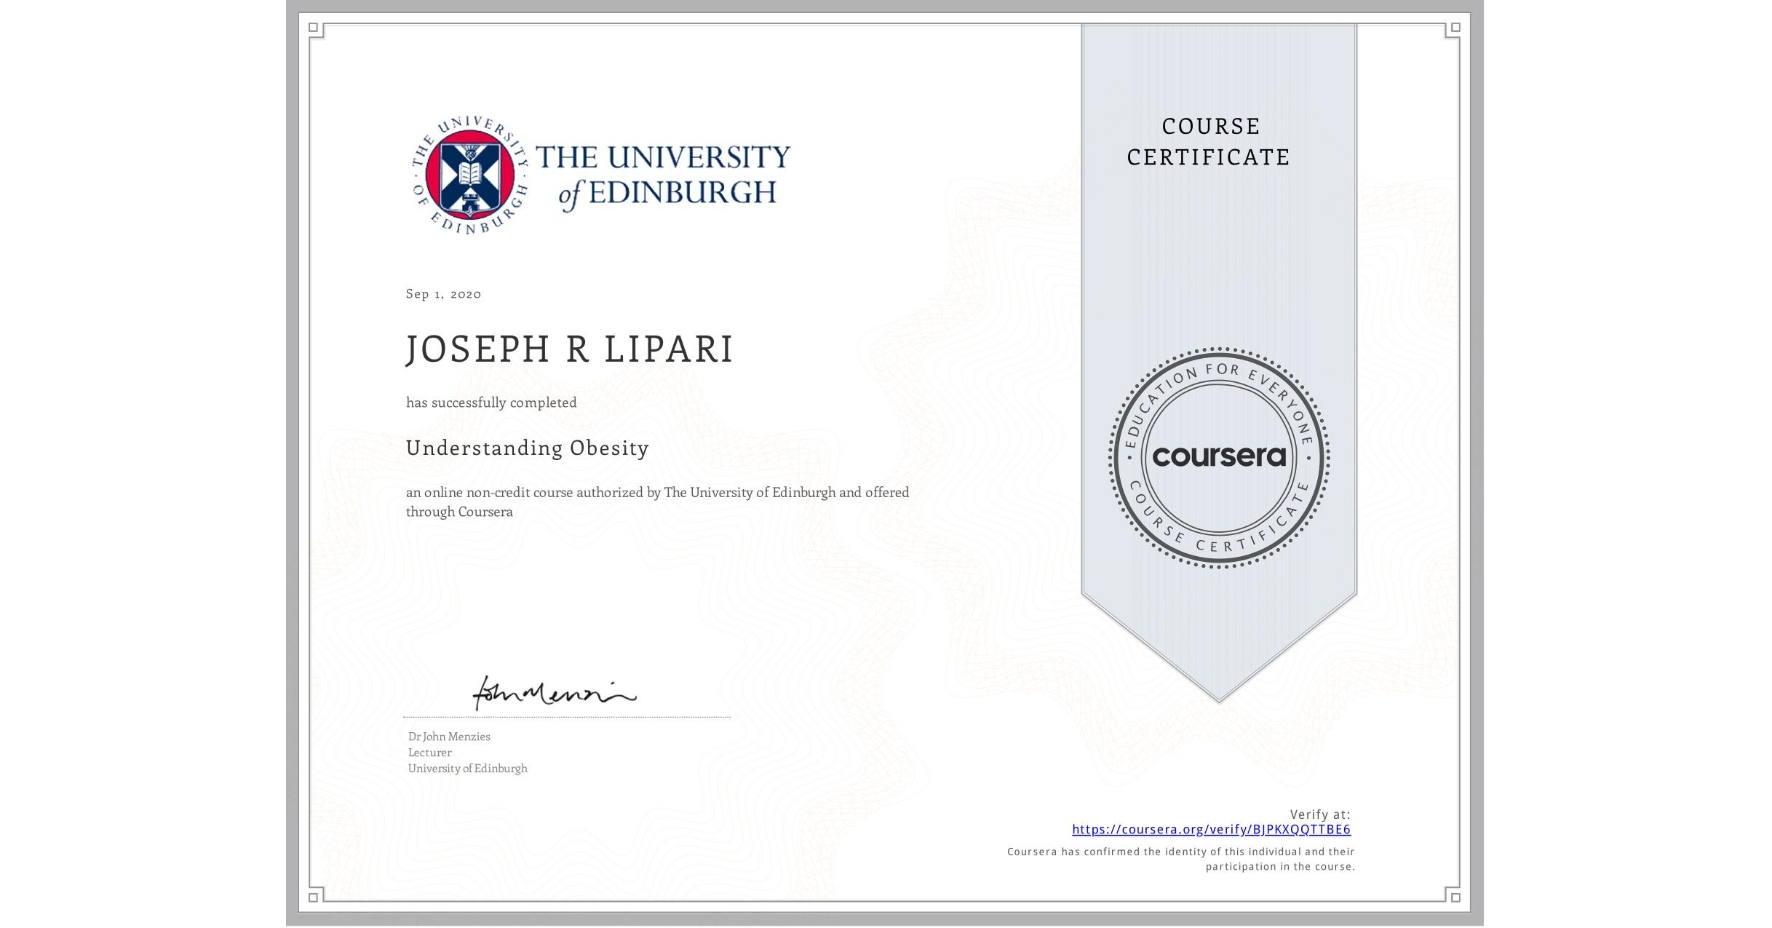 View certificate for JOSEPH R  LIPARI, Understanding Obesity, an online non-credit course authorized by The University of Edinburgh and offered through Coursera